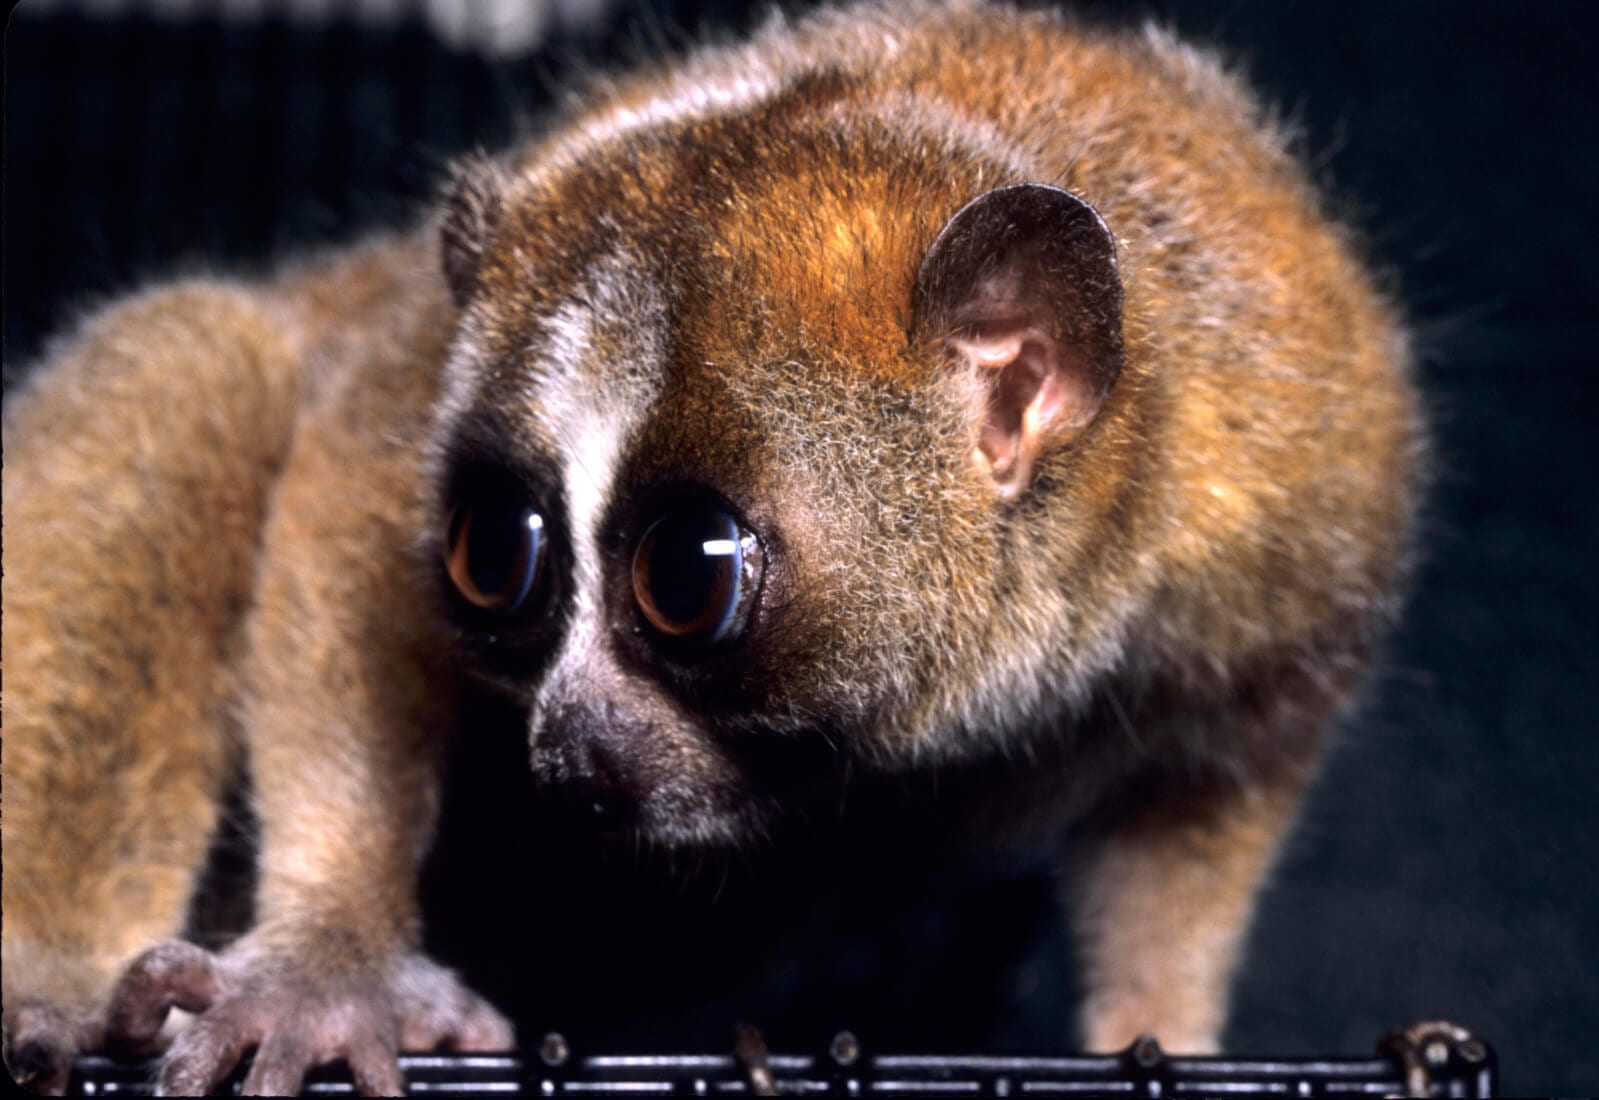 https://en.wikipedia.org/wiki/Slow_loris#/media/File:Nycticebus_pygmaeus_003.jpg